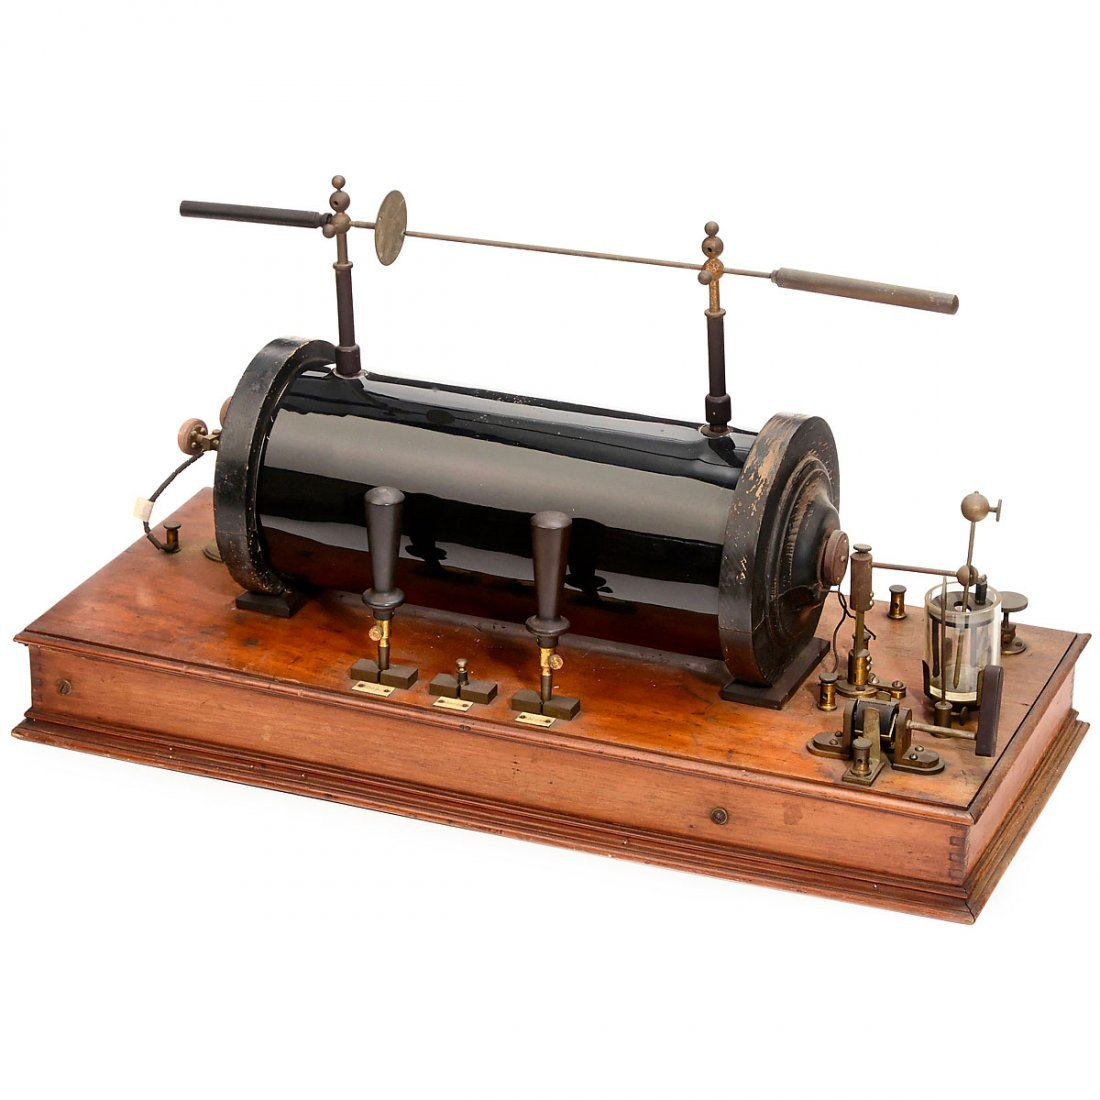 Large Induction Coil with Mercury Interrupter, c. 1910